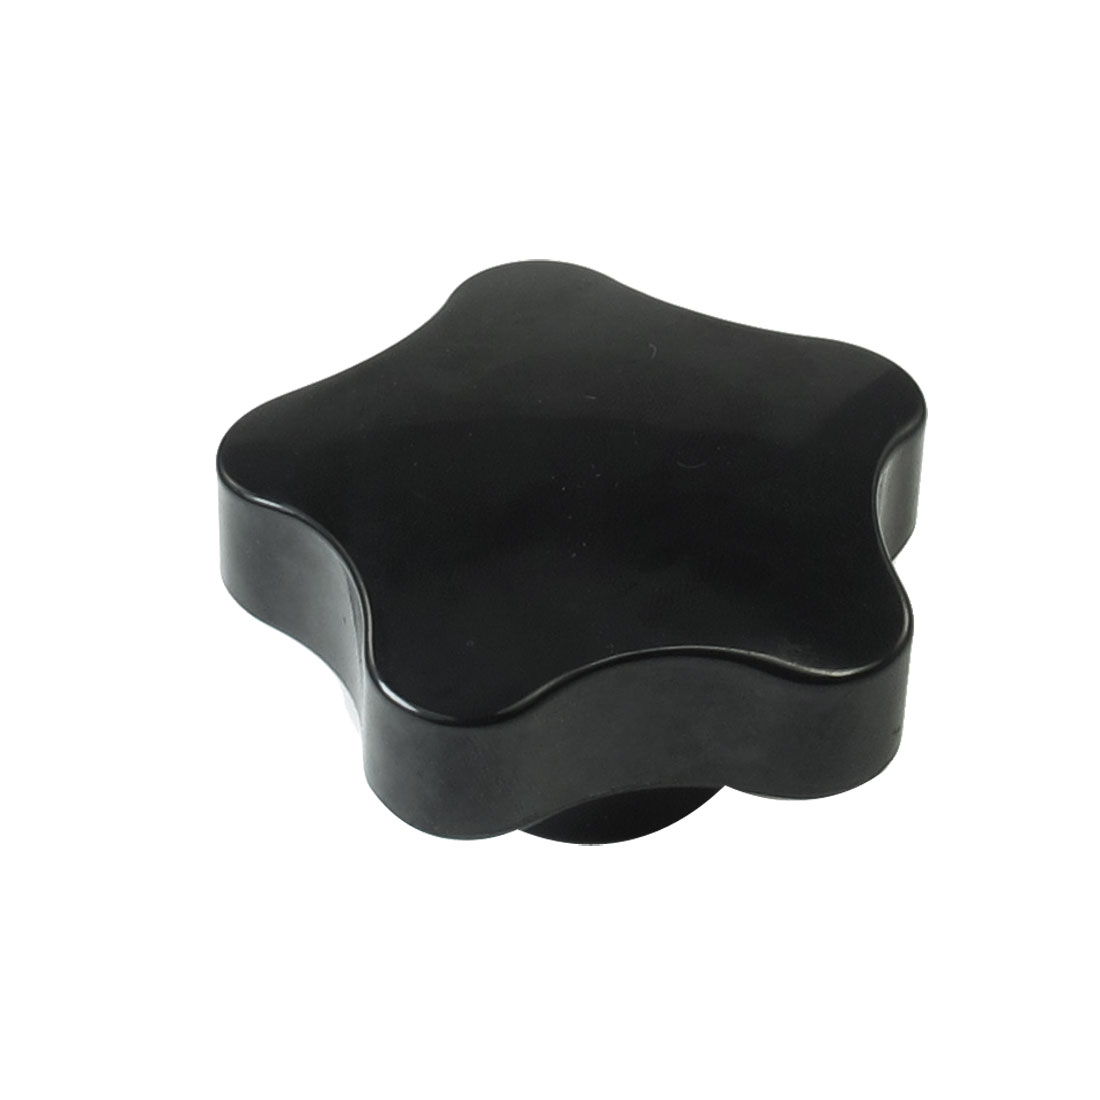 16mm Dia Female Thread Black Plastic Grip Replacement Star Knob